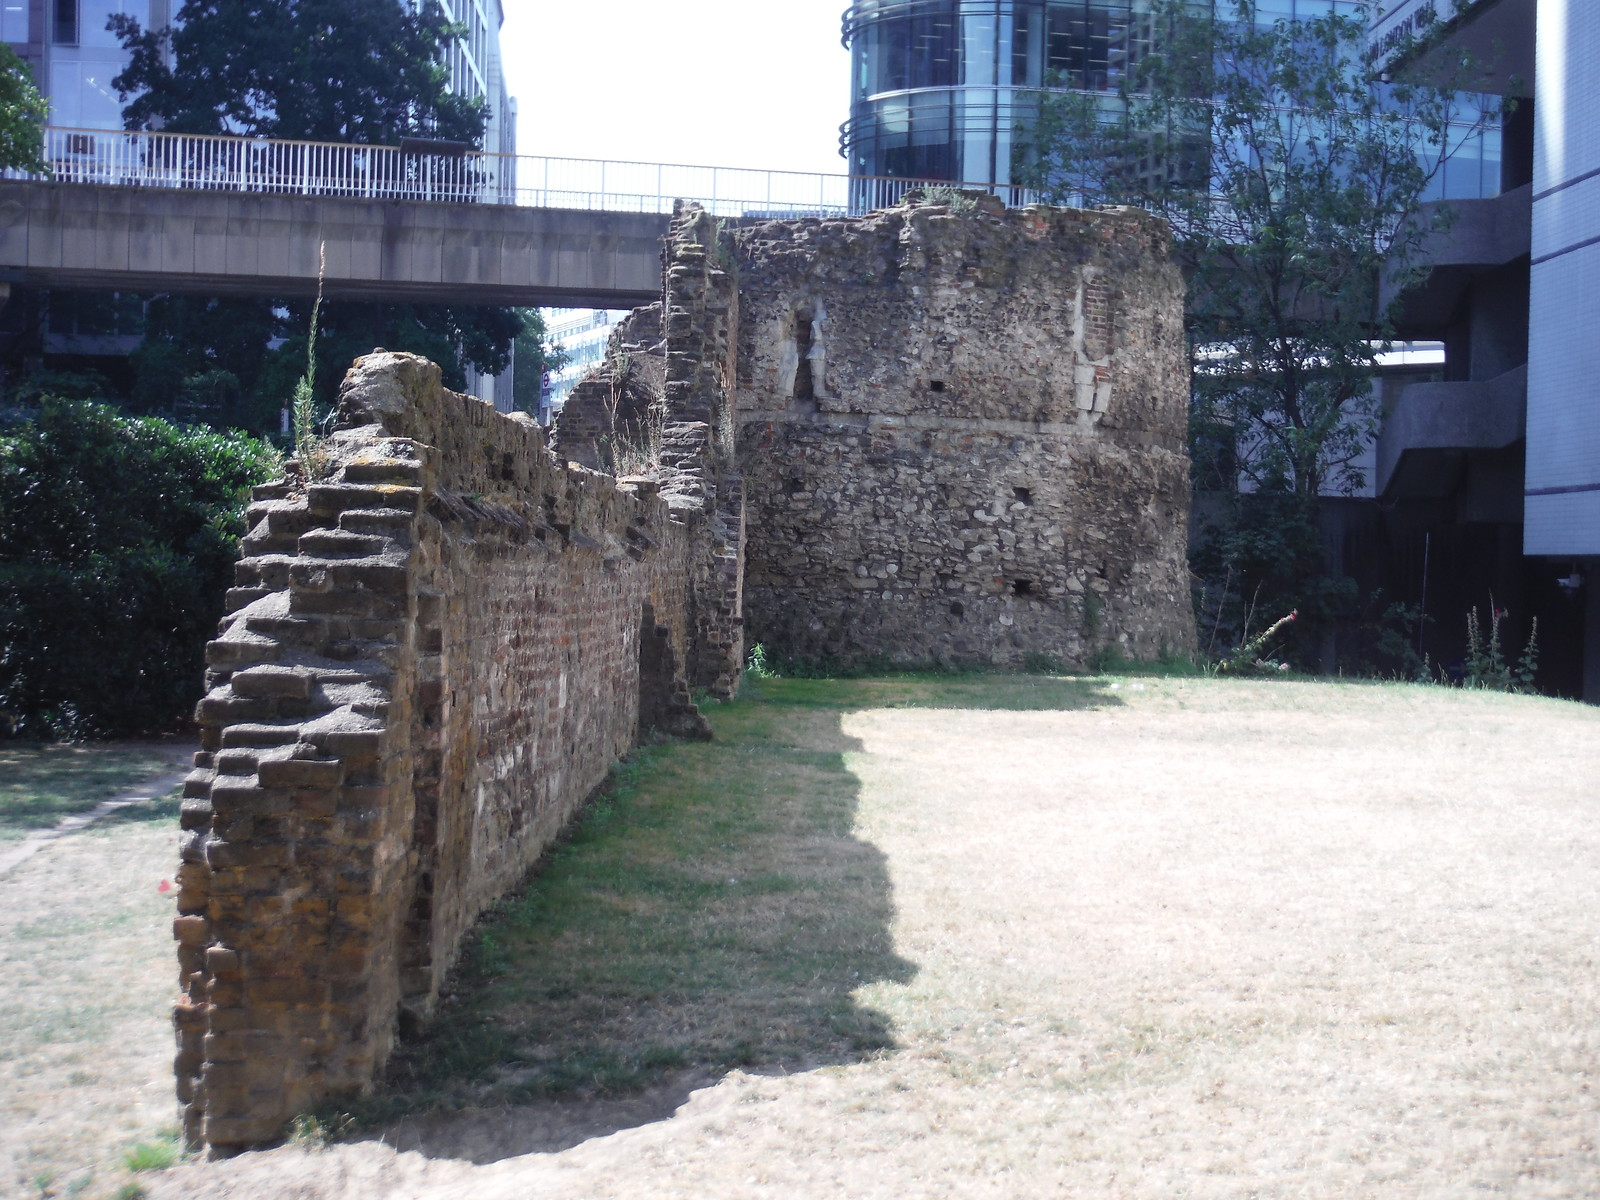 London Wall and Bastion 14, by the Museum of London SWC Short Walk 47 - The London Wall